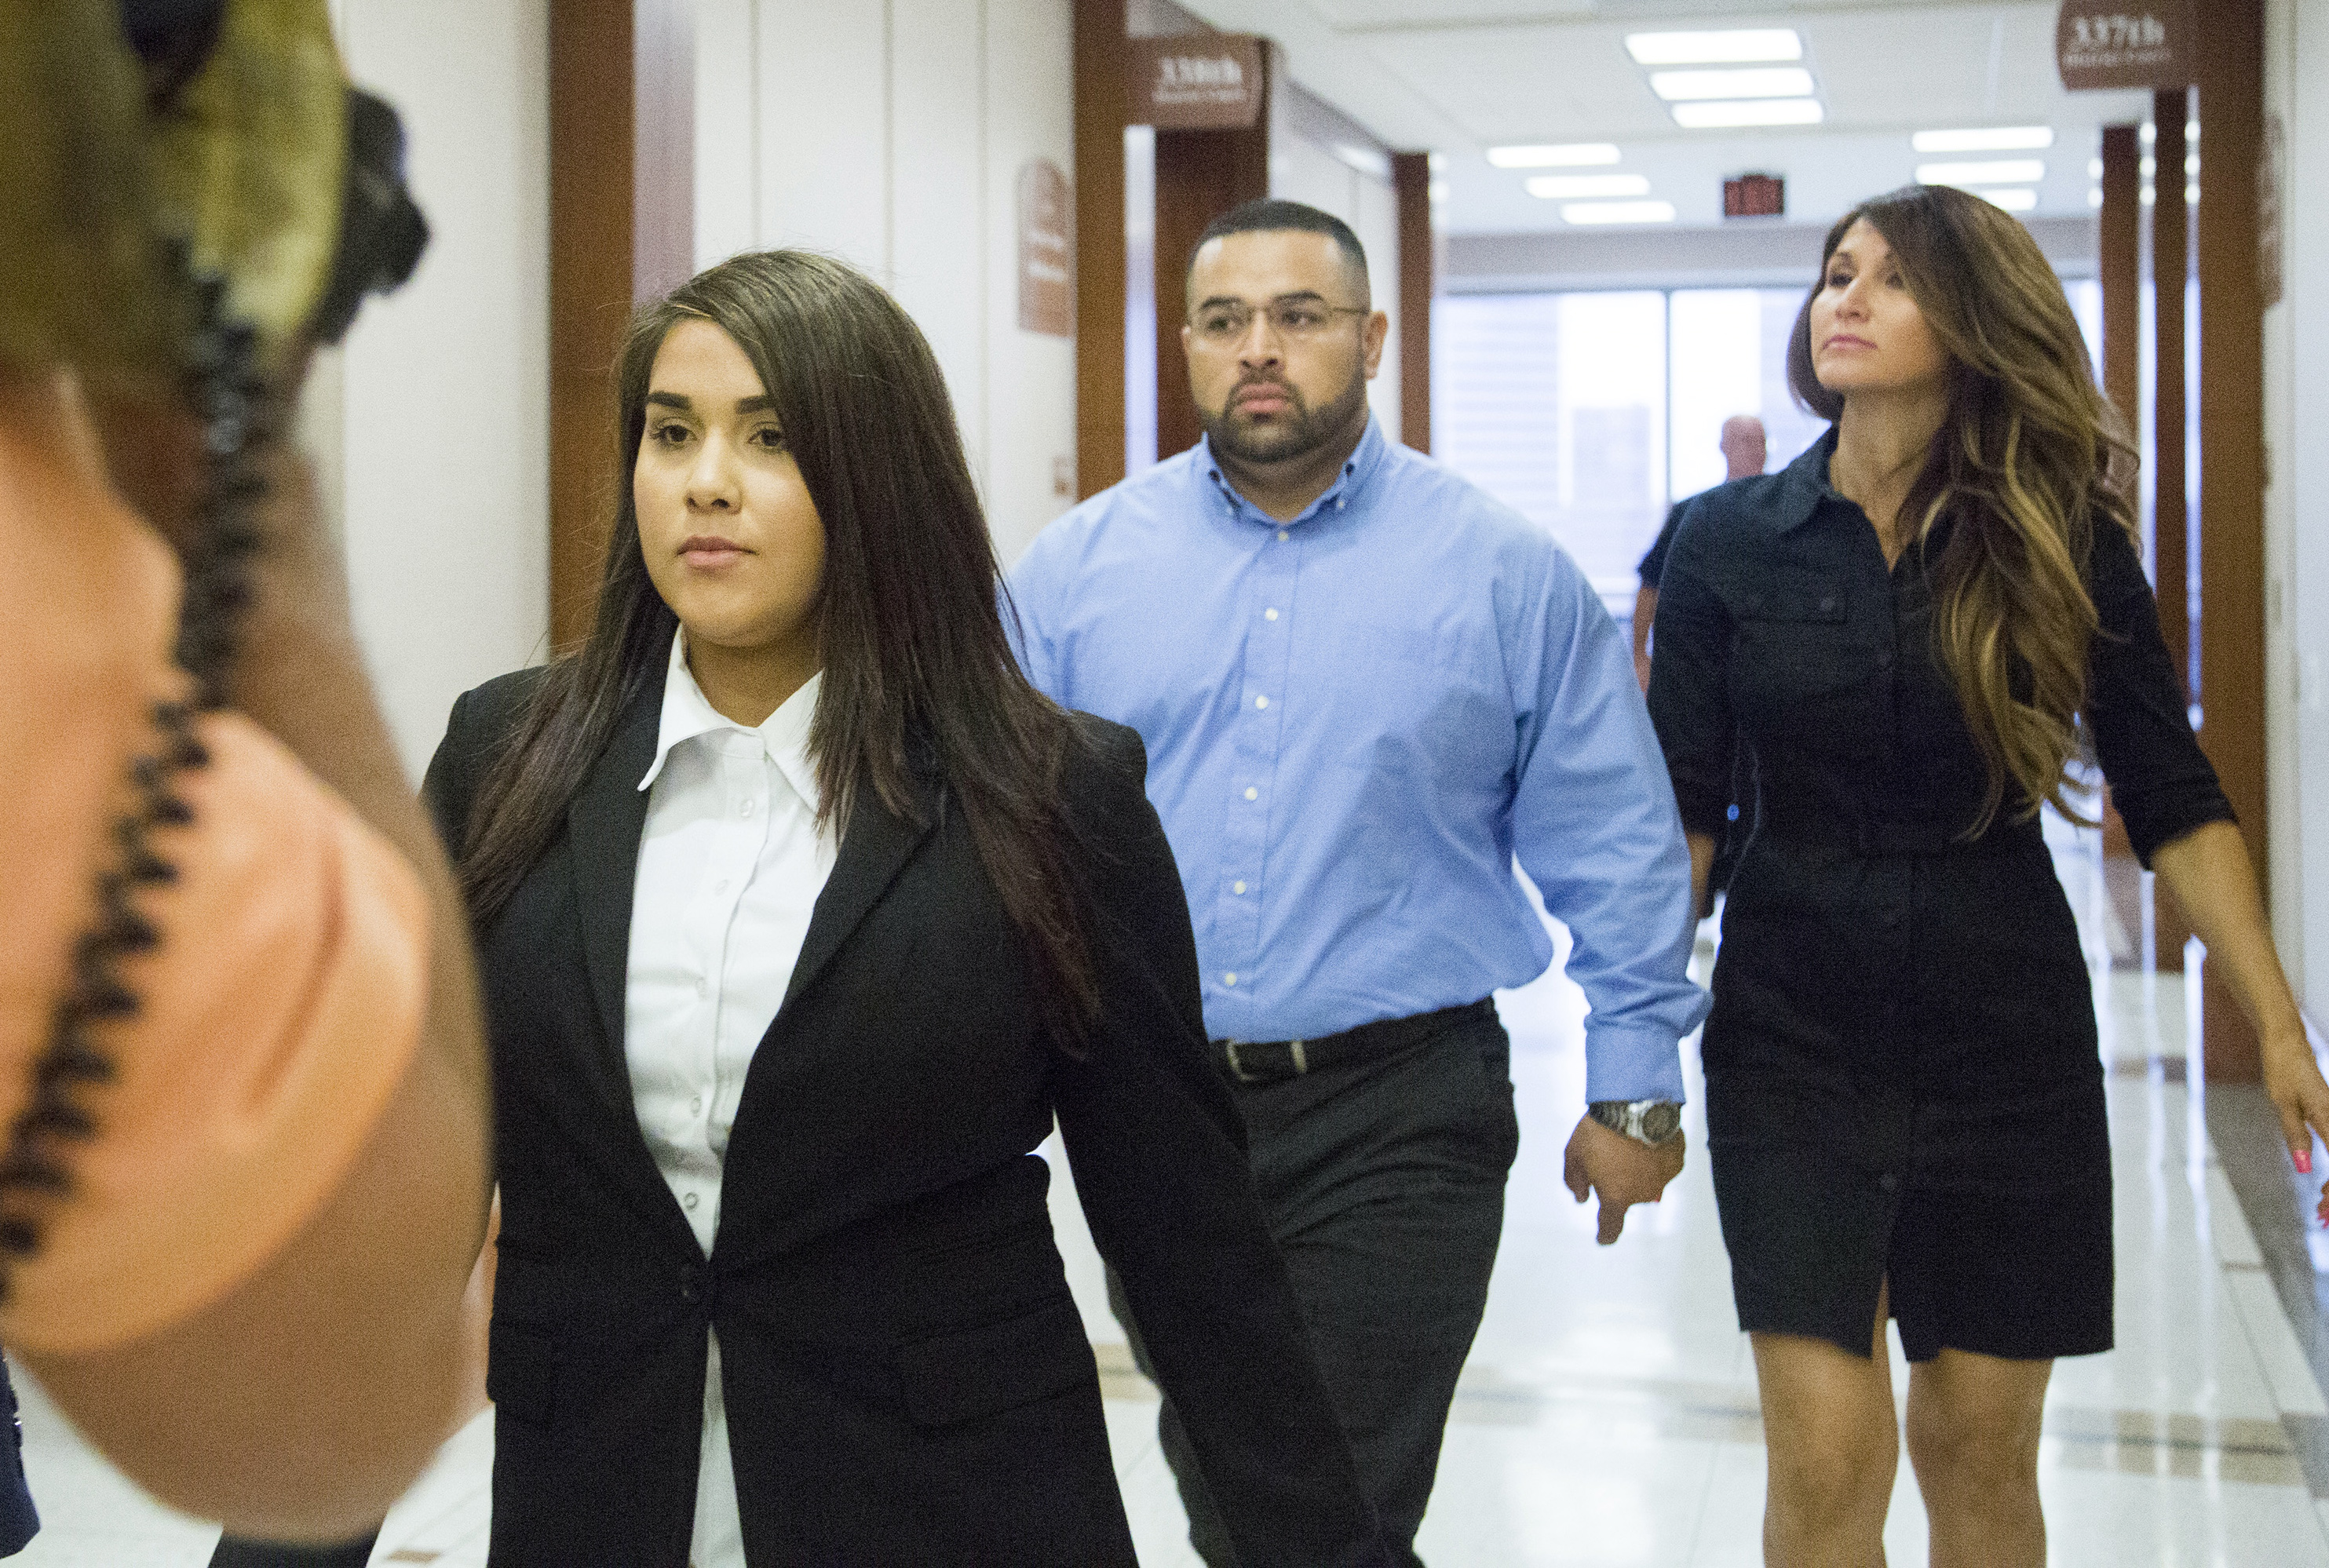 Middle School Teacher Impregnated By Student Could Get Probation After Pleading Guilty To Lesser Charge